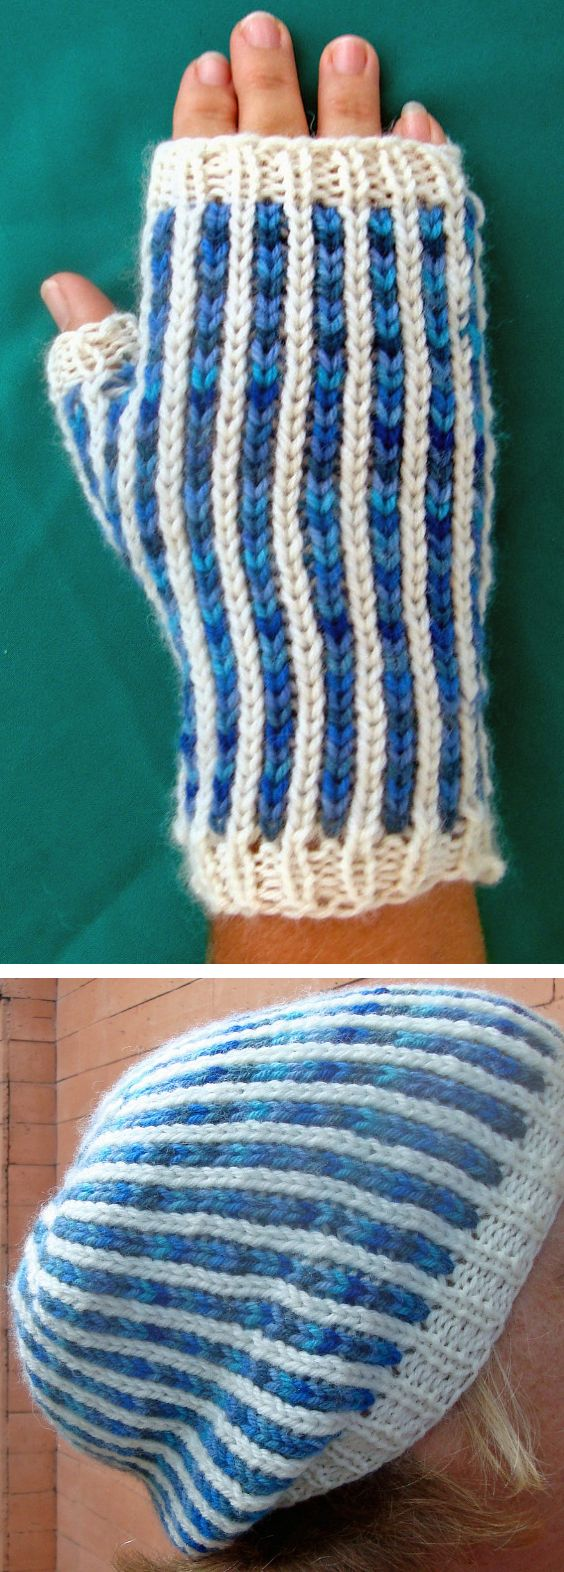 Free Knitting Pattern for Matching Bi-Color Mitts and Slouchy Hat - The vertical stripe colorwork in this set is knit with NO stranding or slipping any stitches. Mitts pattern has an option for full mittens. Hat can be knit flat or in the round. Great with multi-color yarn. Designed by Terry Morris